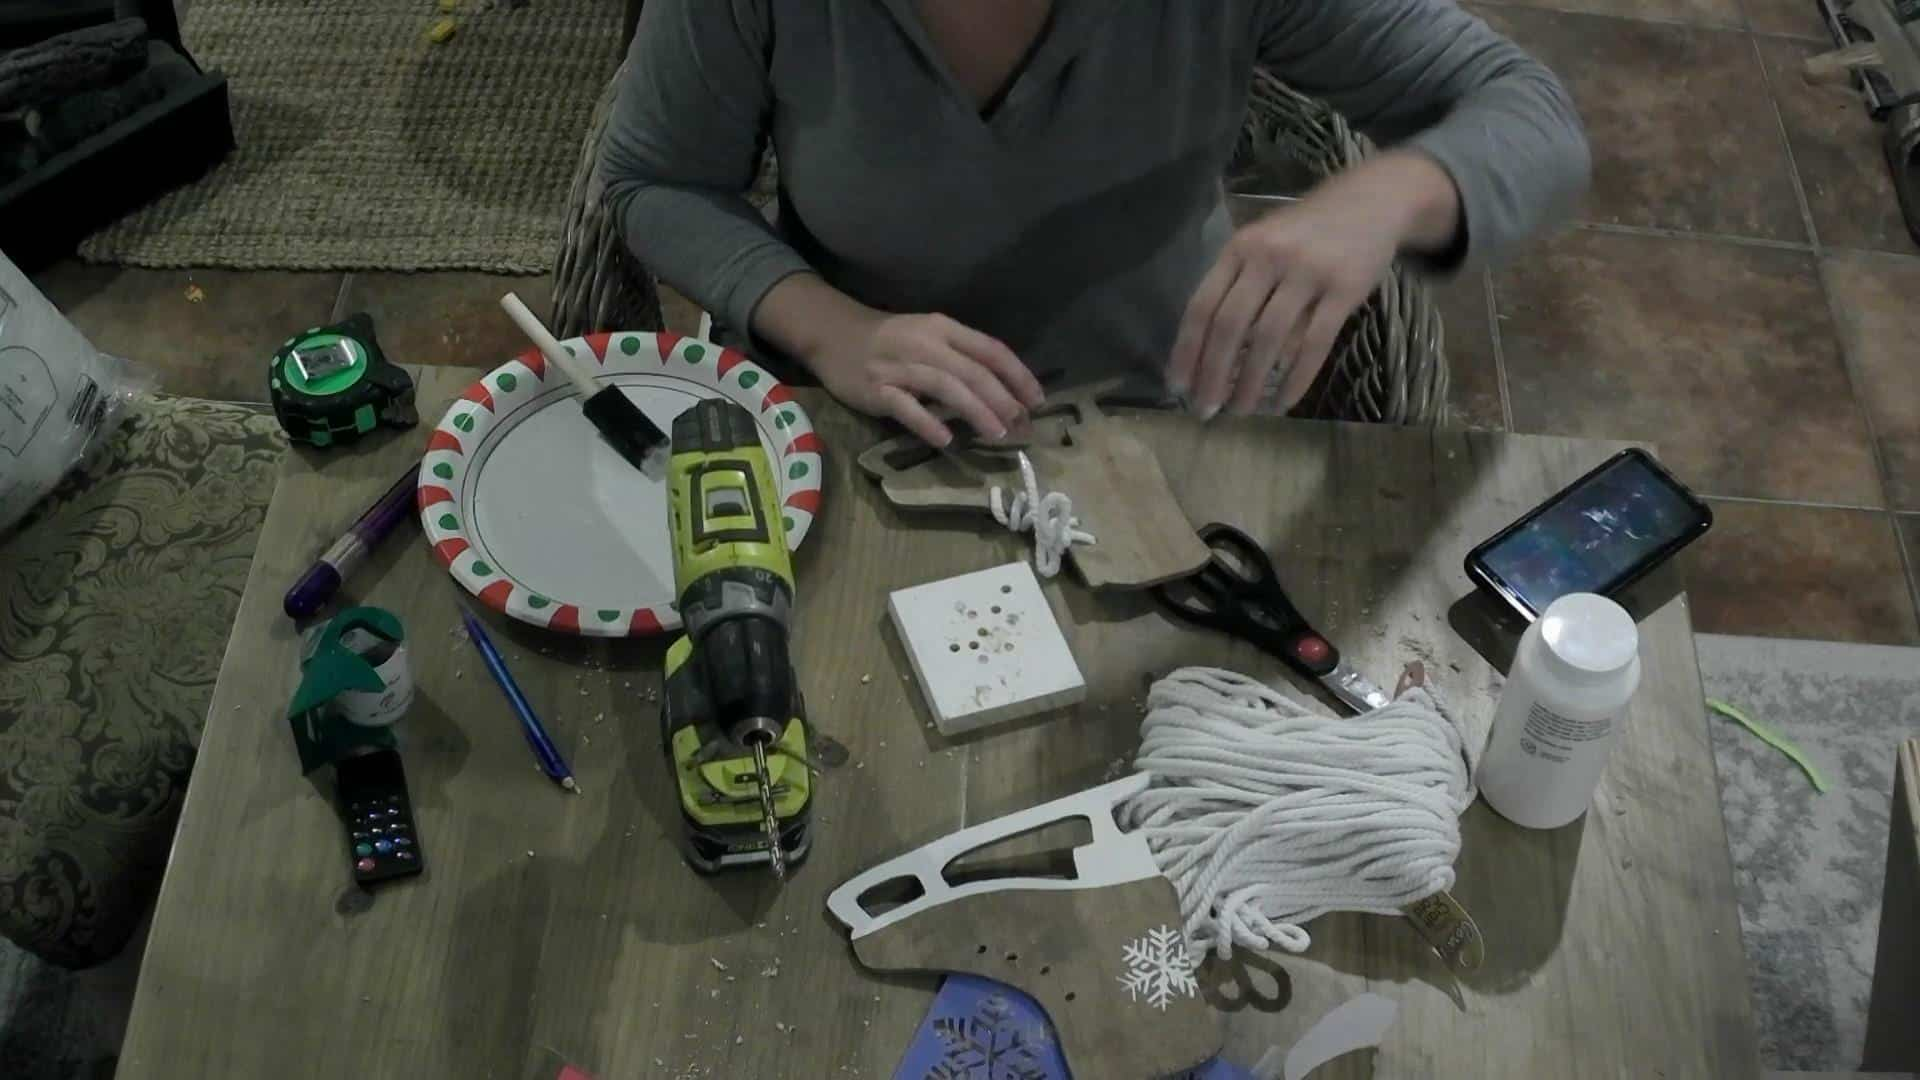 Tying the laces on the DIY Ice Skate Decor